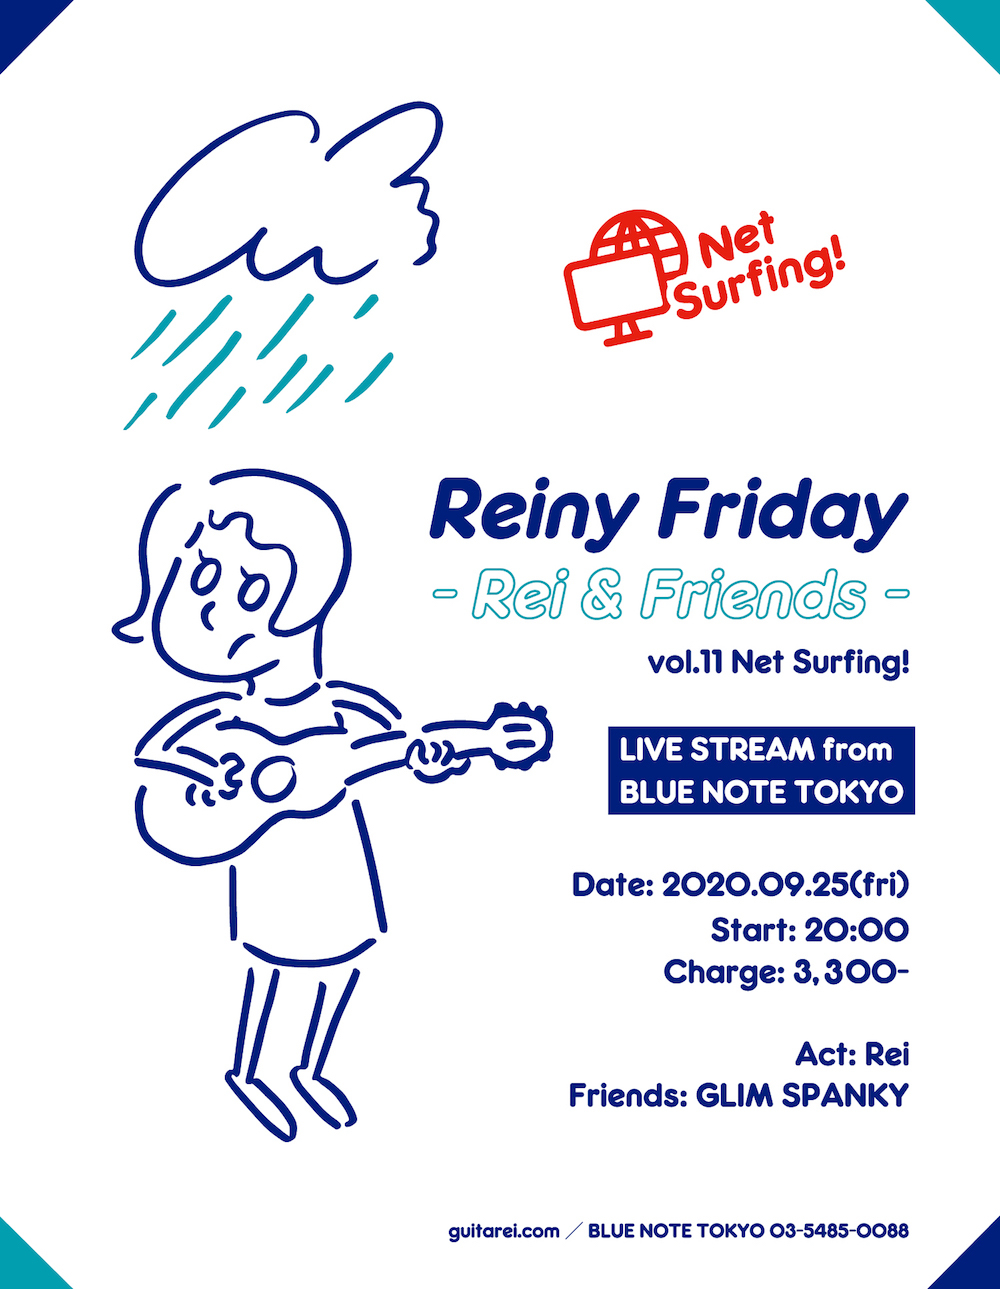 Reiny Friday -Rei & Friends- Vol.11 Net Surfing!